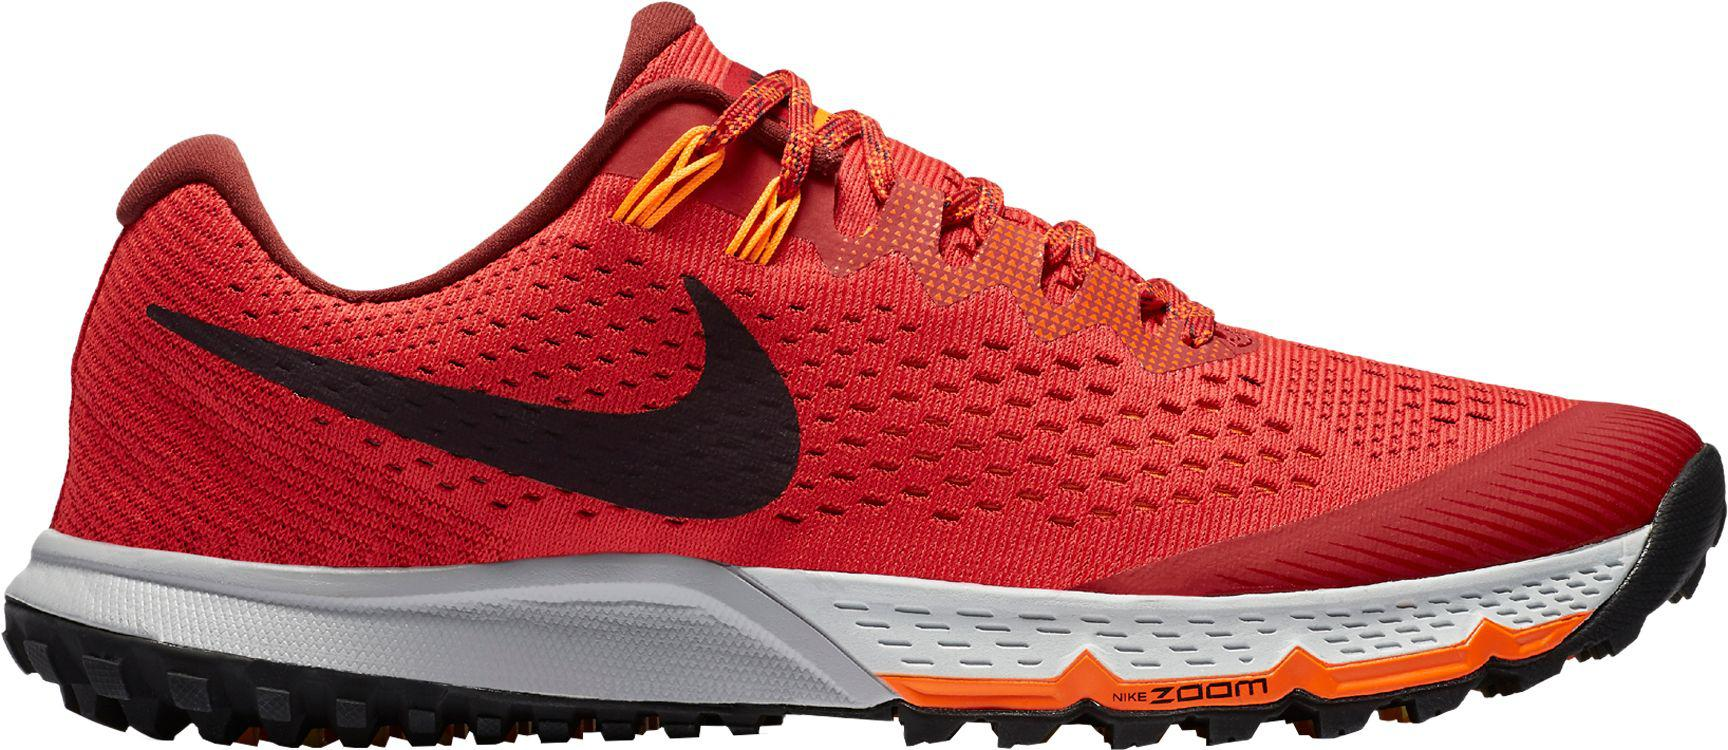 2168c97e47d8 Lyst - Nike Air Zoom Terra Kiger 4 Trail Running Shoes in Red for Men